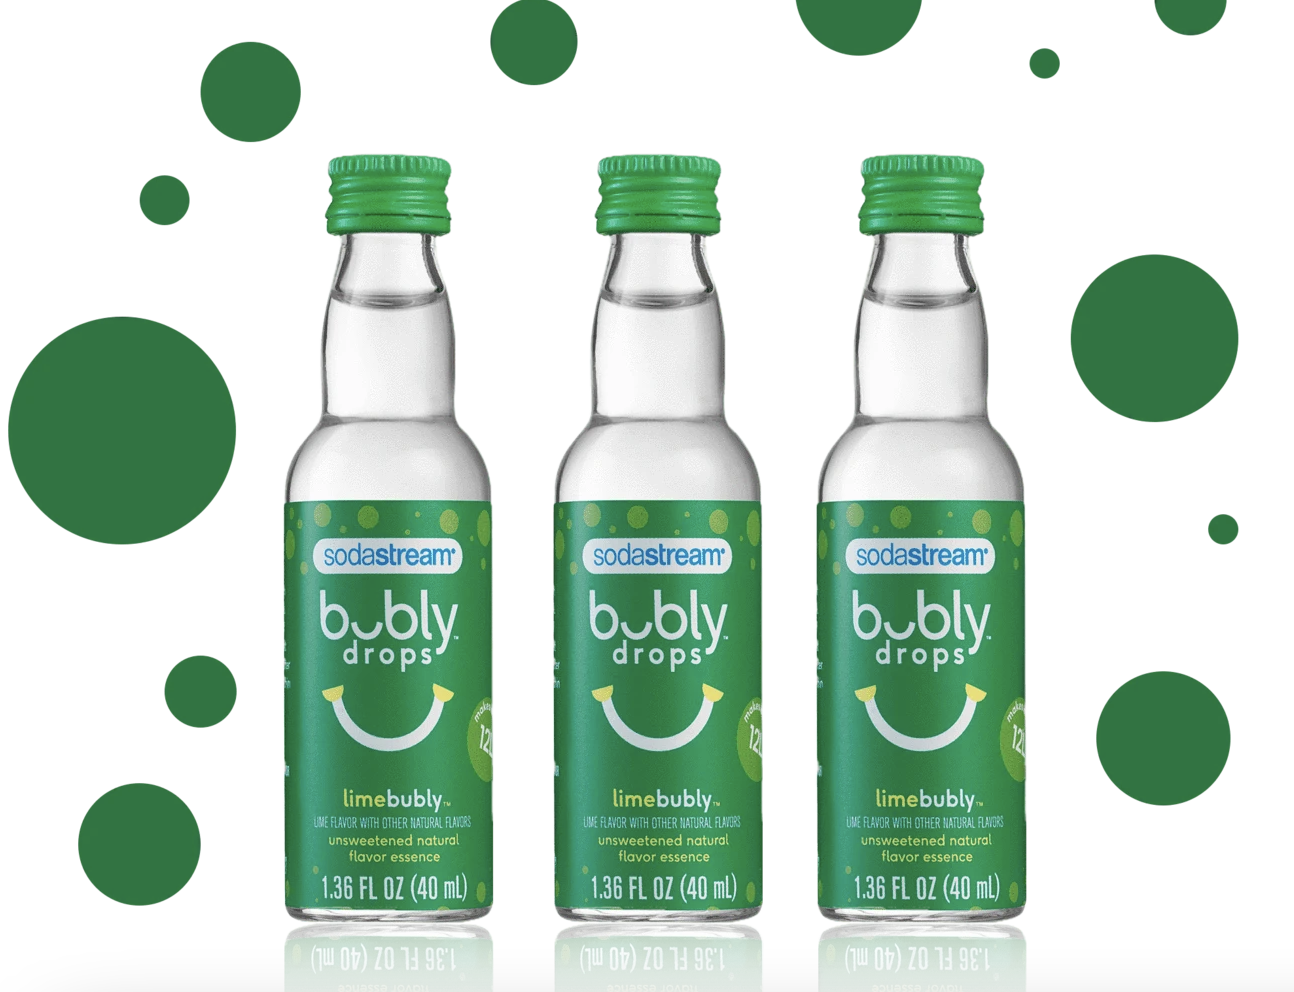 SodaStream bubly drops Unsweetened Natural Flavor Essence, 40ml--CHOOSE FLAVOR